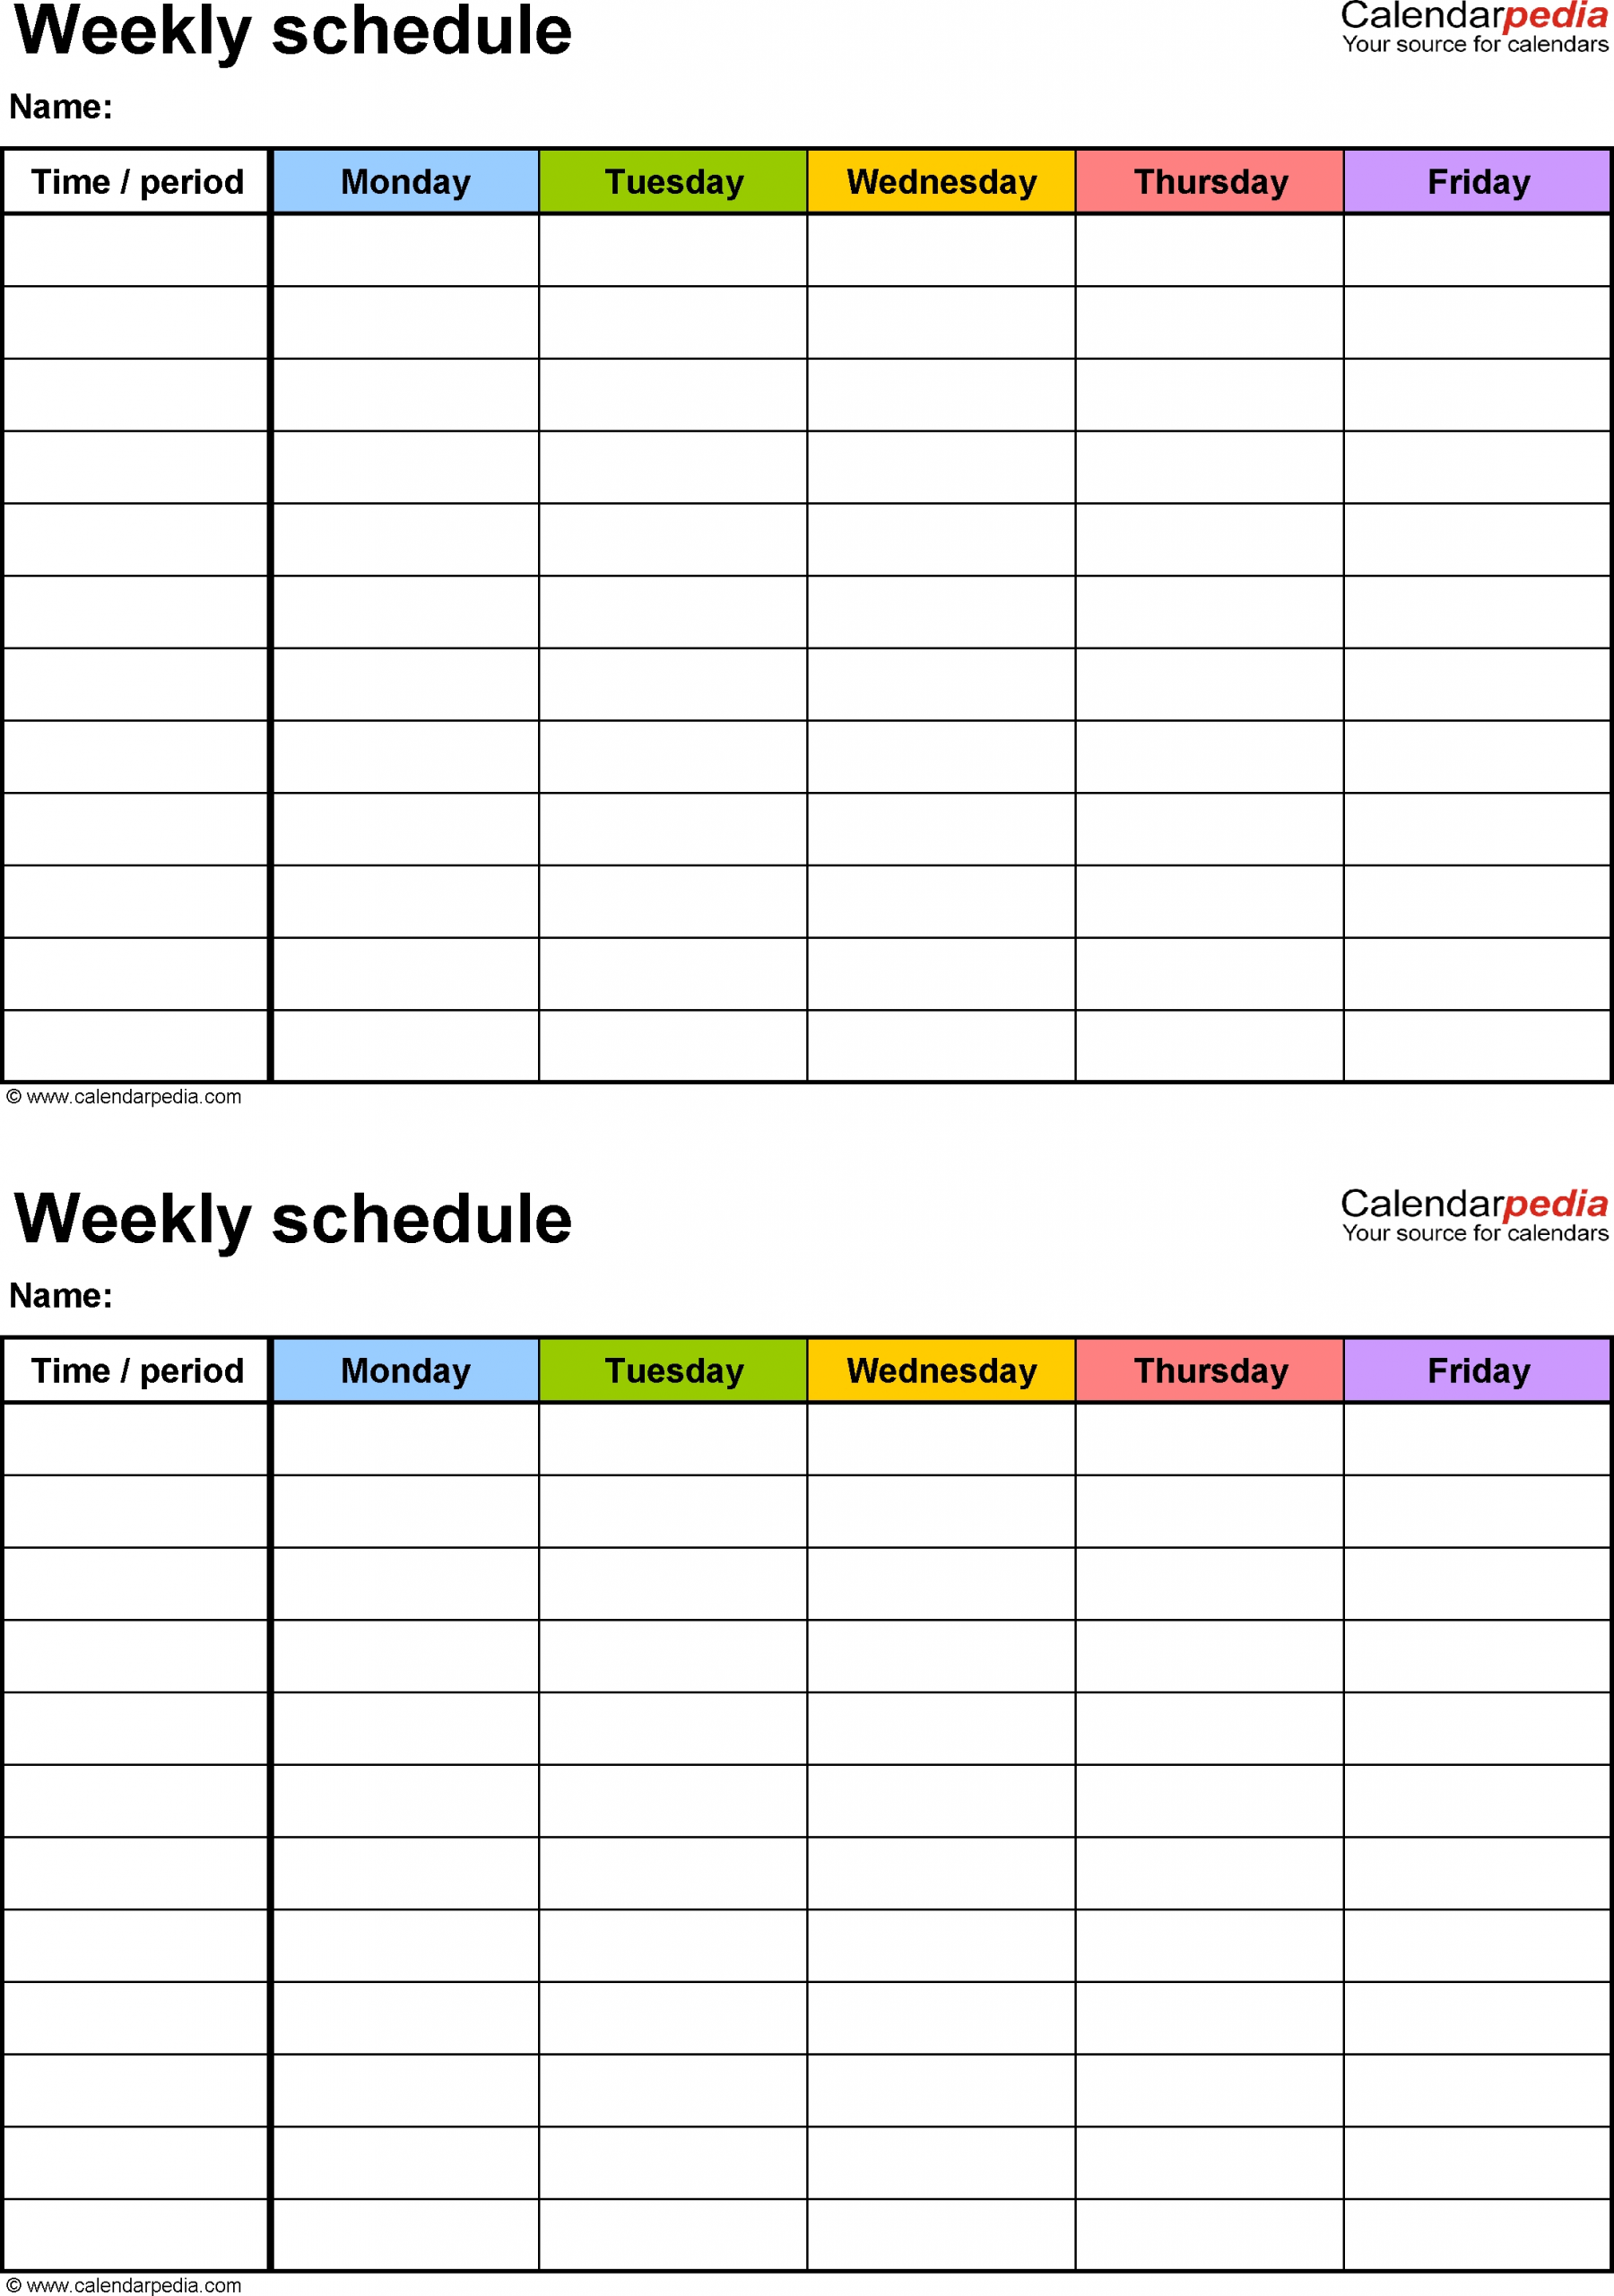 Printable Weekly Schedule Monday Thru Friday - Calendar Monday Thru Friday Printable Calendar Free